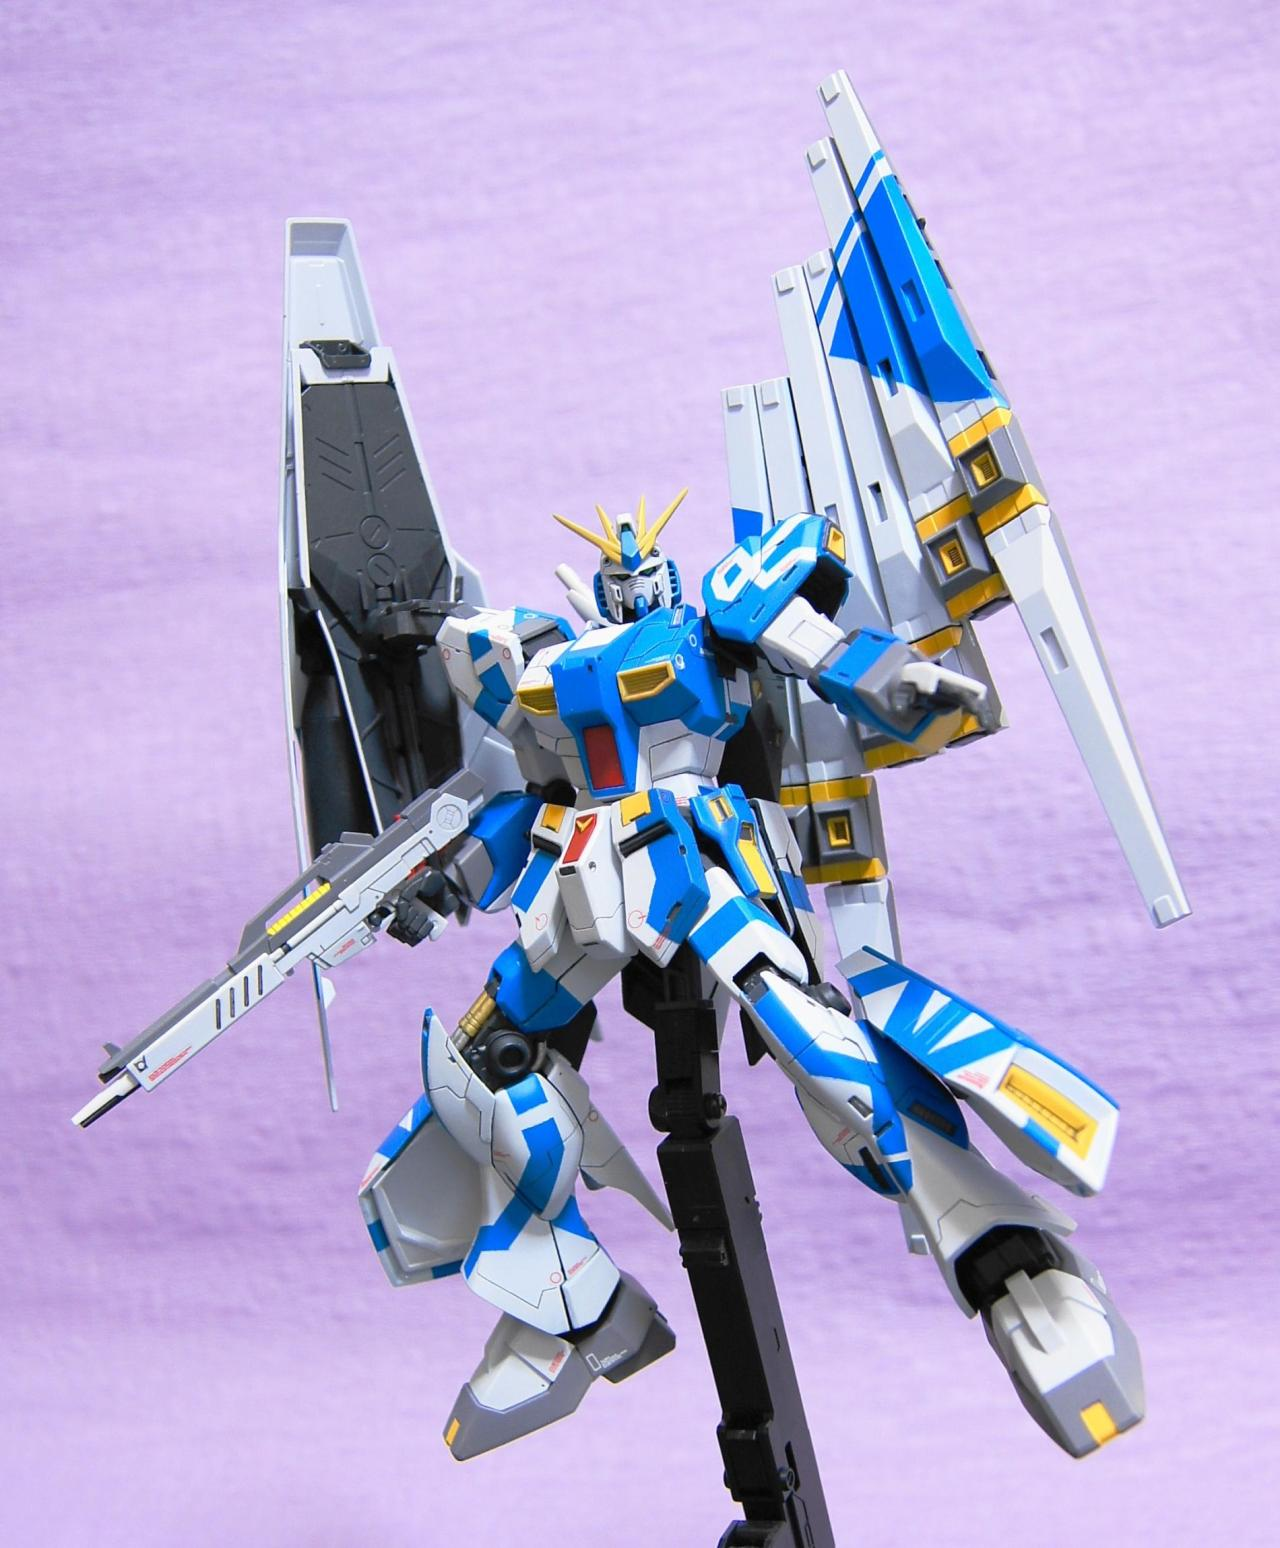 gunjap:  1/144 RX-93 Nu Gundam (Original Color): Full Photoreview No.18 Wallpaper Size Imageshttp://www.gunjap.net/site/?p=127581